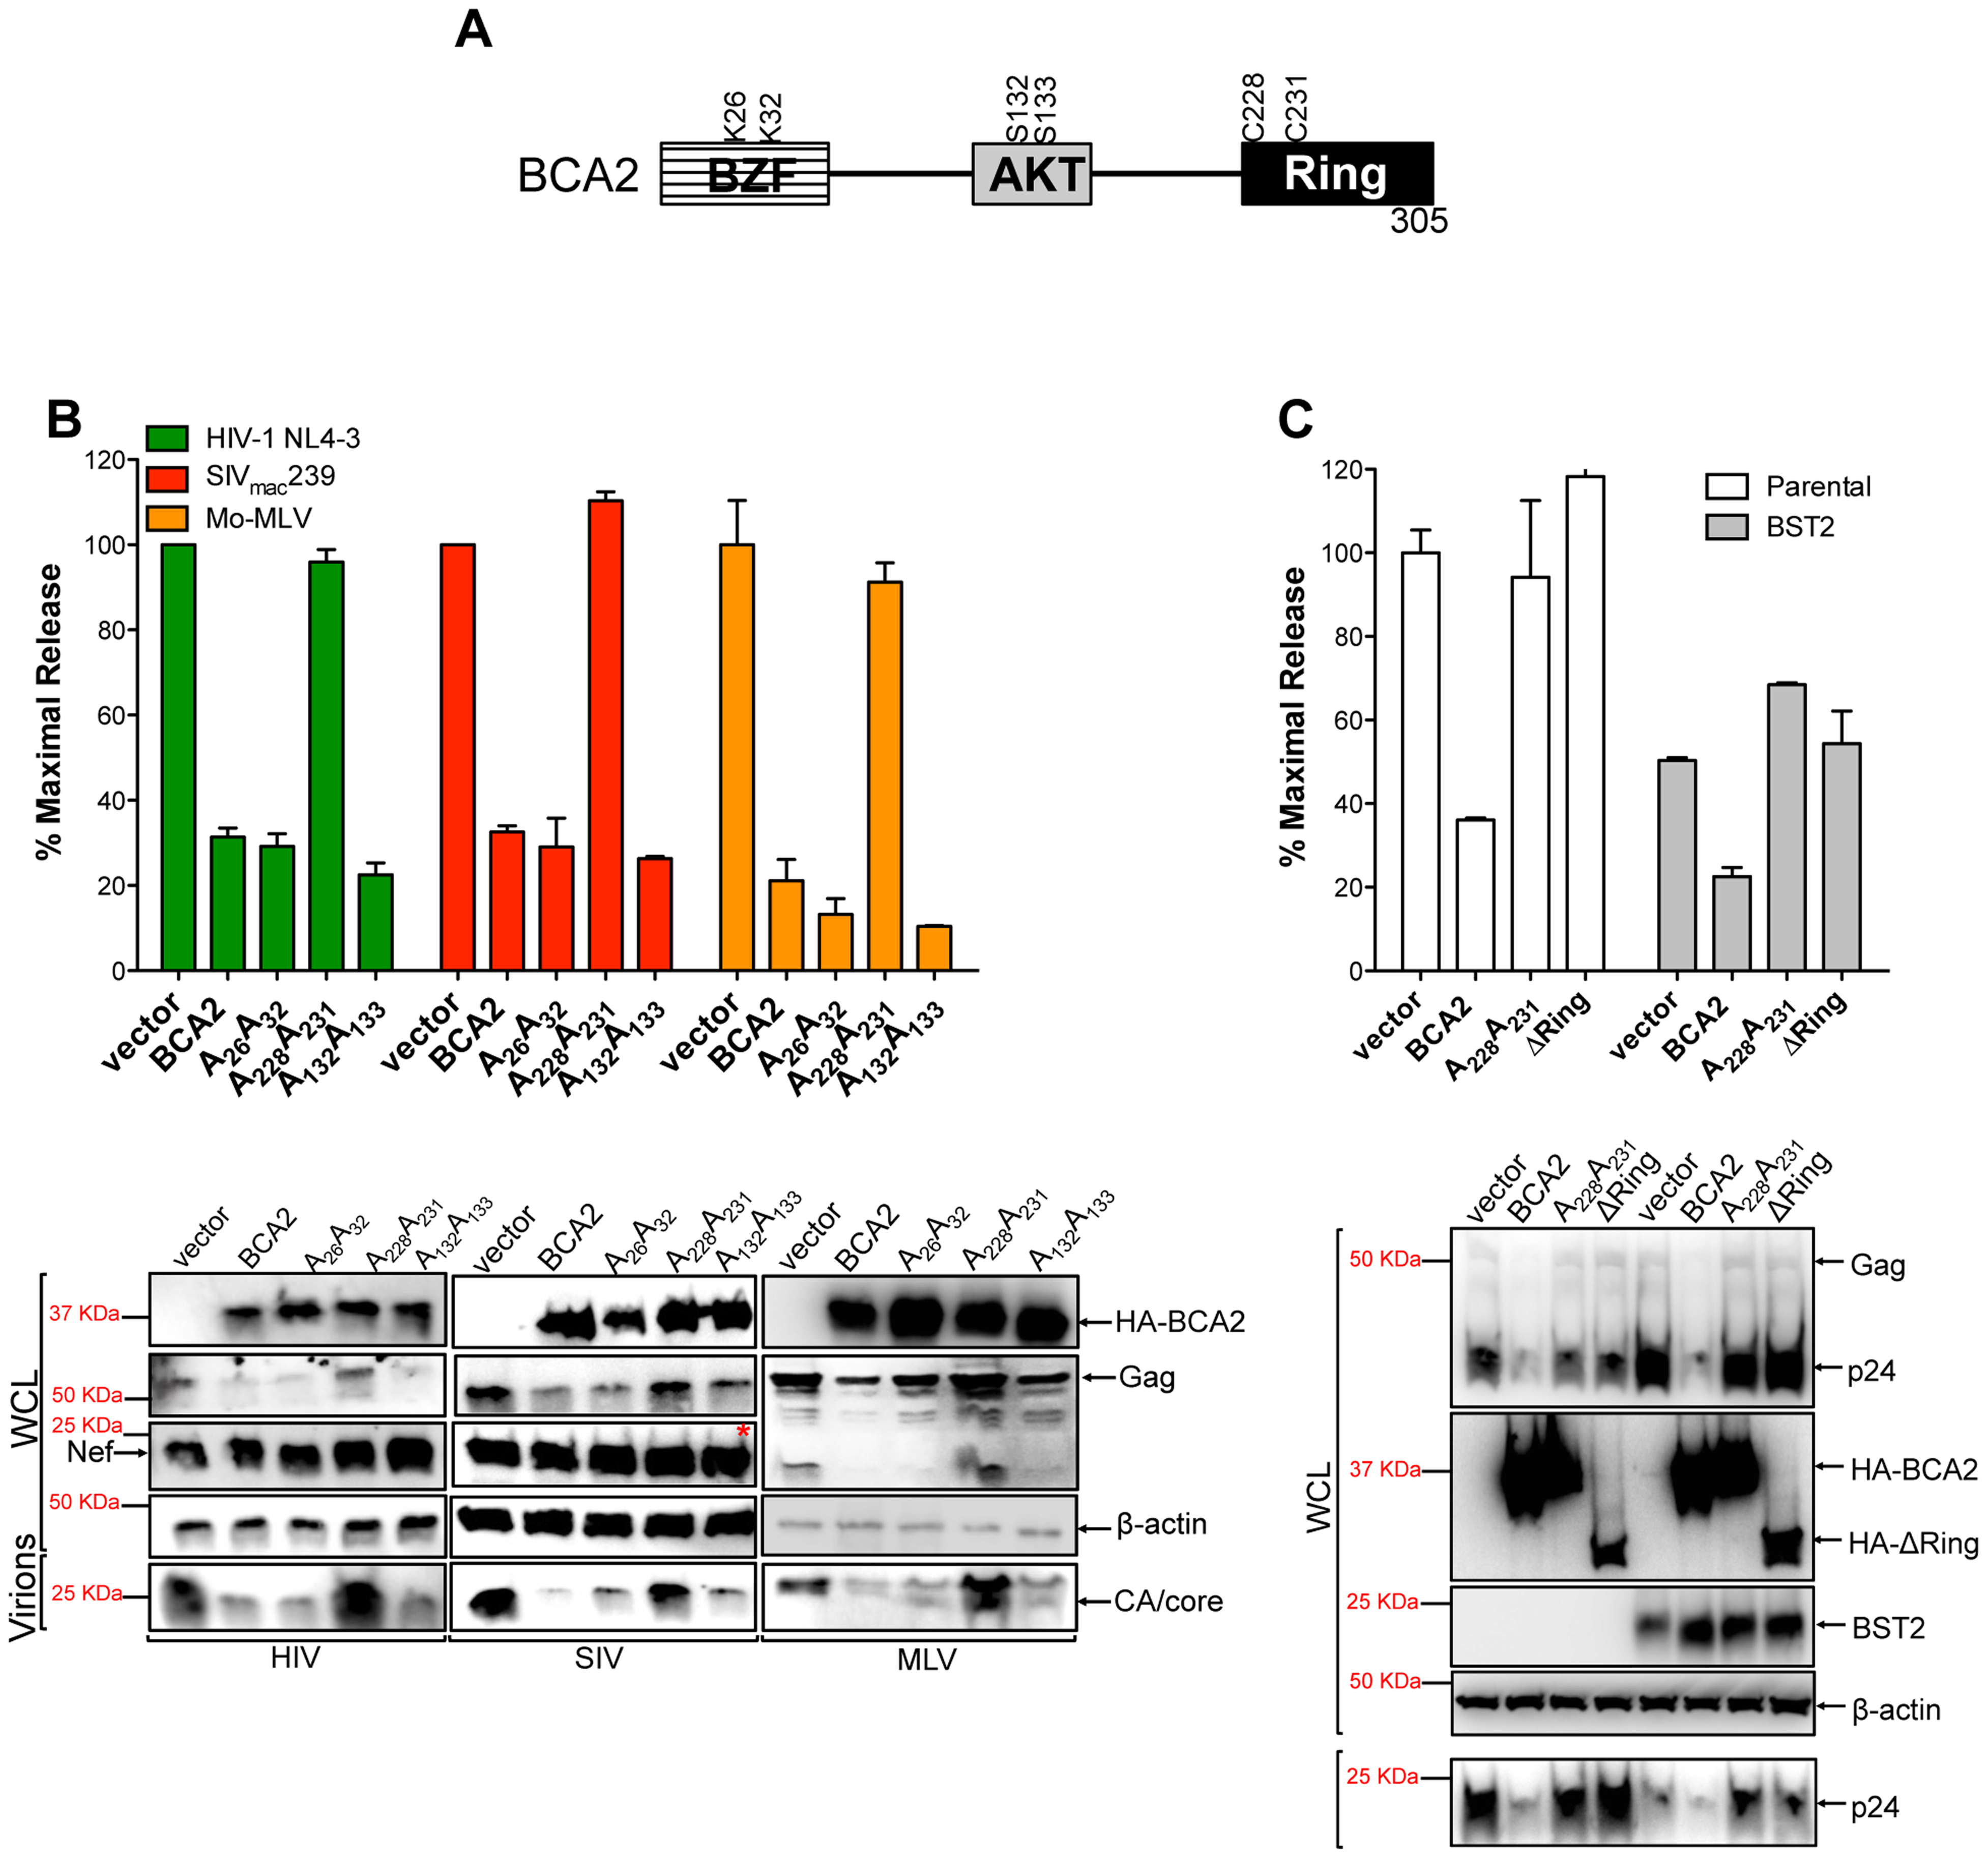 The E3 ligase activity of BCA2 is required for antiviral activity.